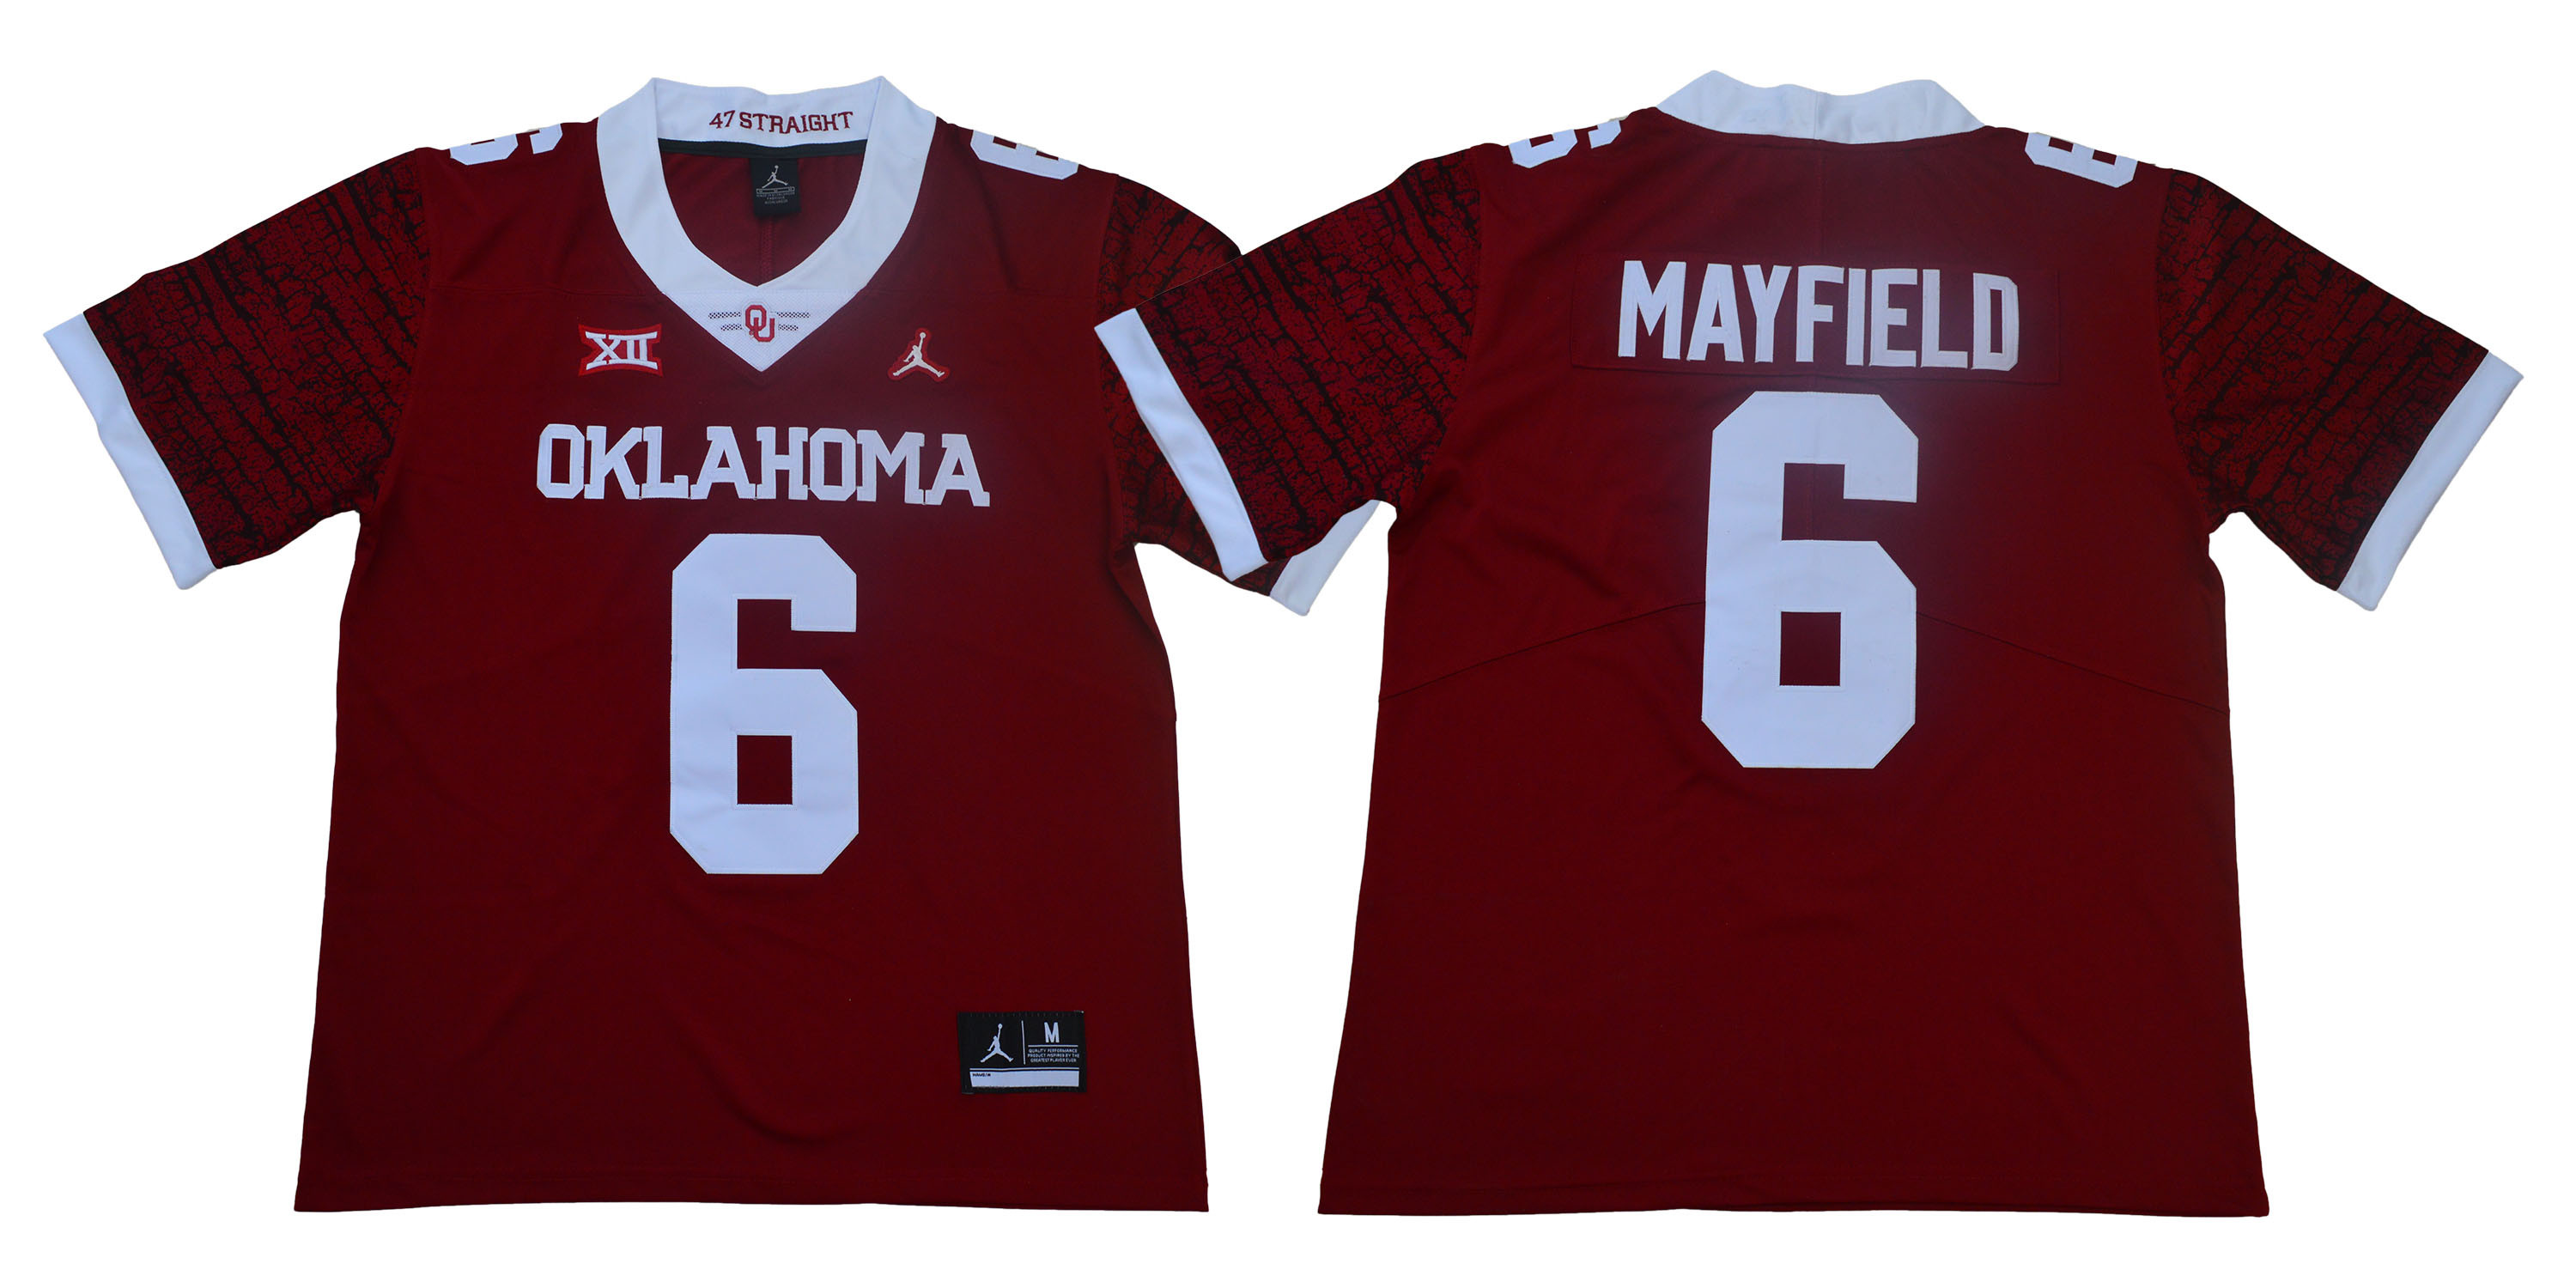 Oklahoma Sooners 6 Baker Mayfield Red 47 Game Winning Streak College Football Jersey